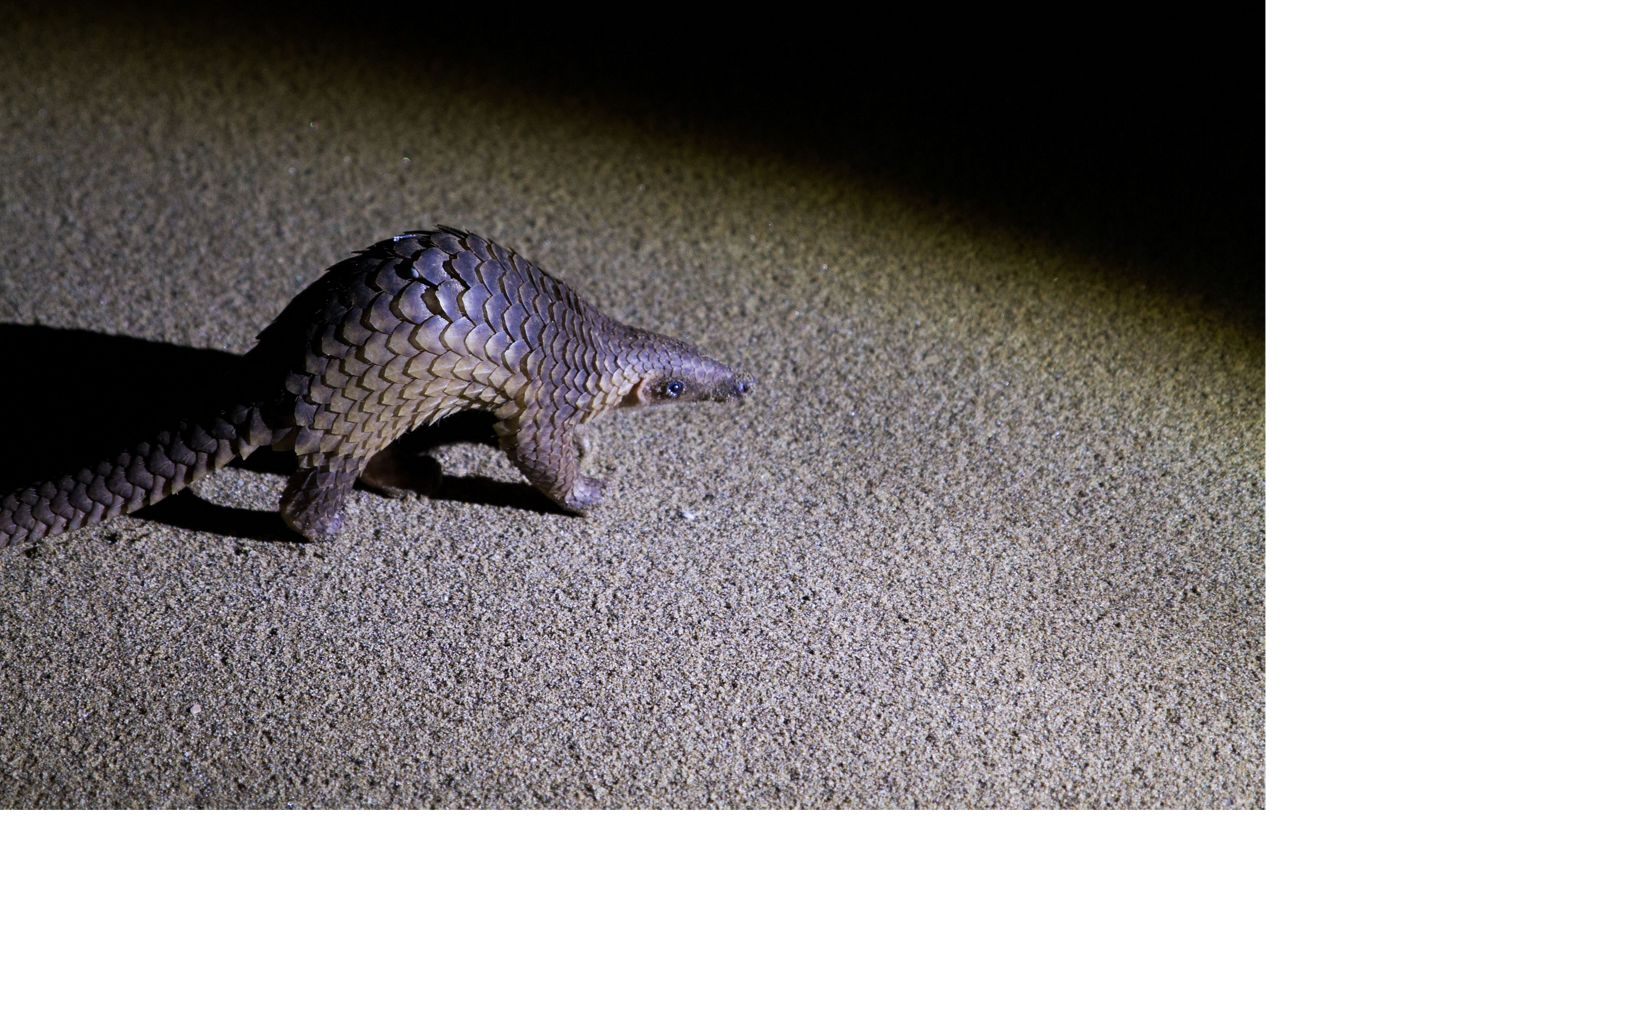 a scaly animal on dark ground at night